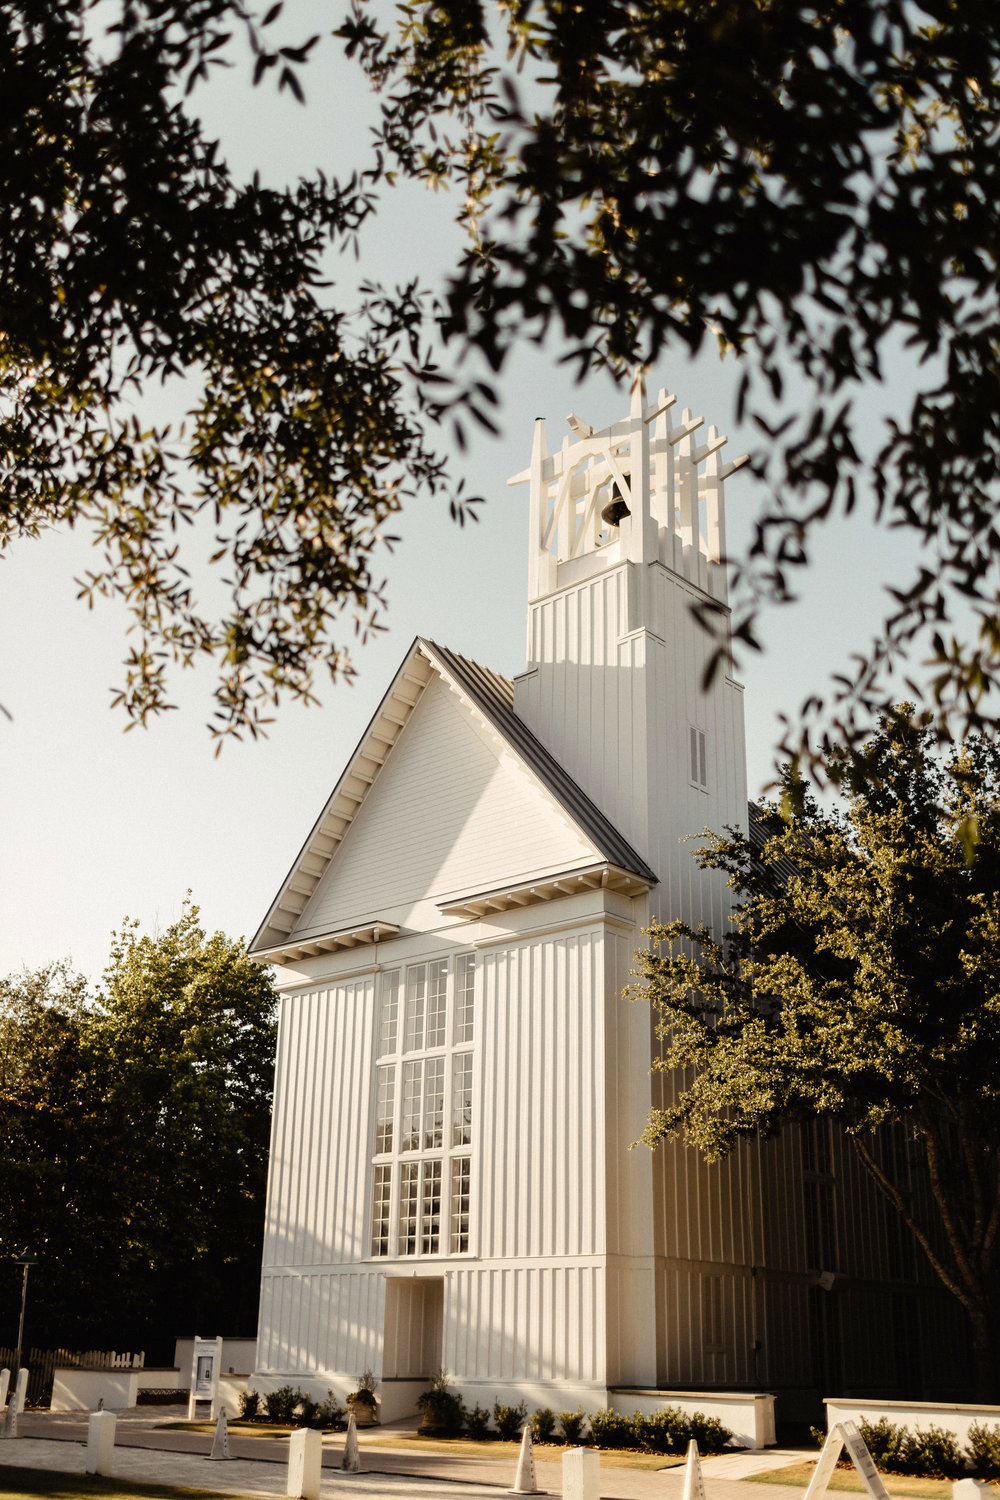 The Chapel at Seaside, Florida